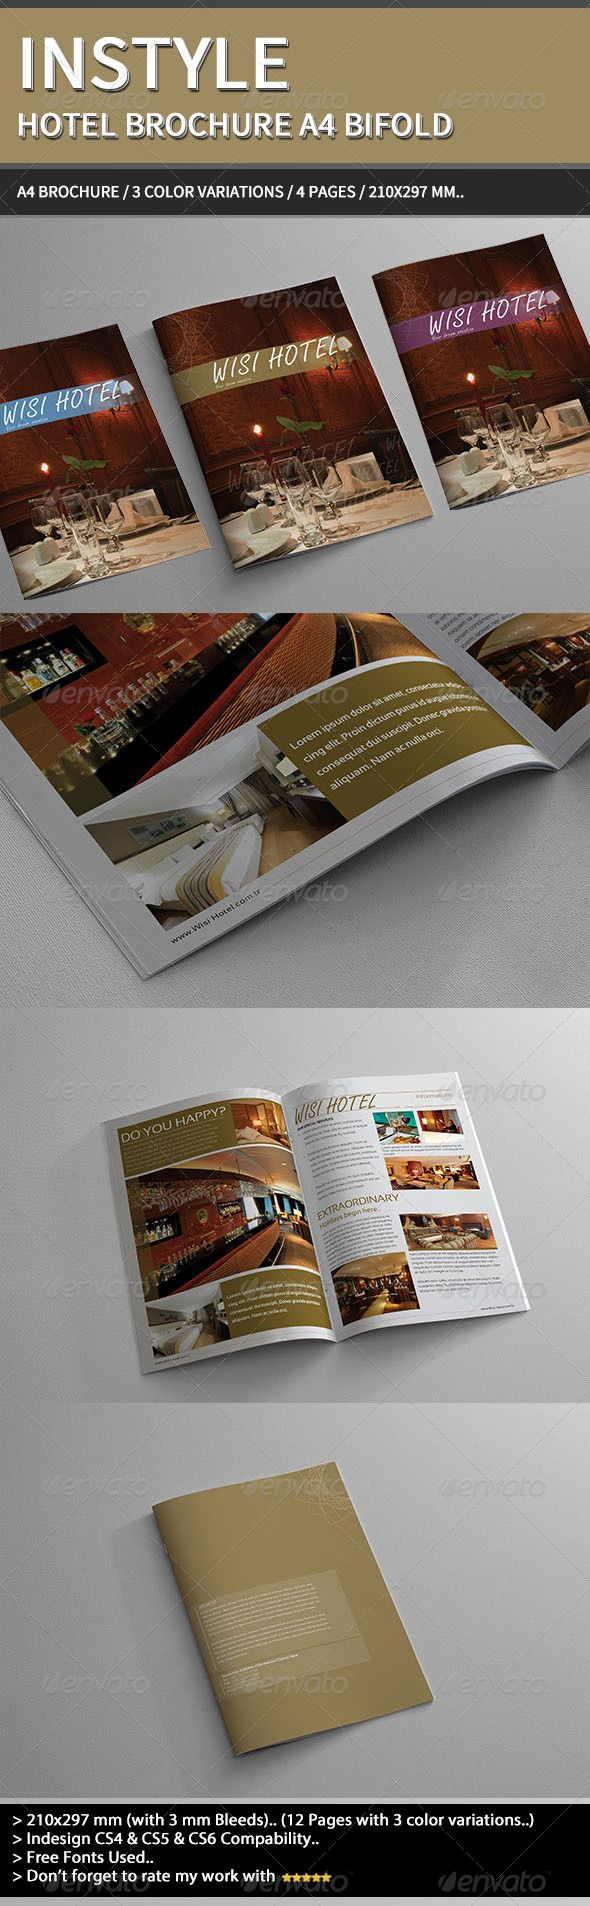 InStyle Hotel Brochure A4 | Hotel brochure, Brochures and Brochure ...